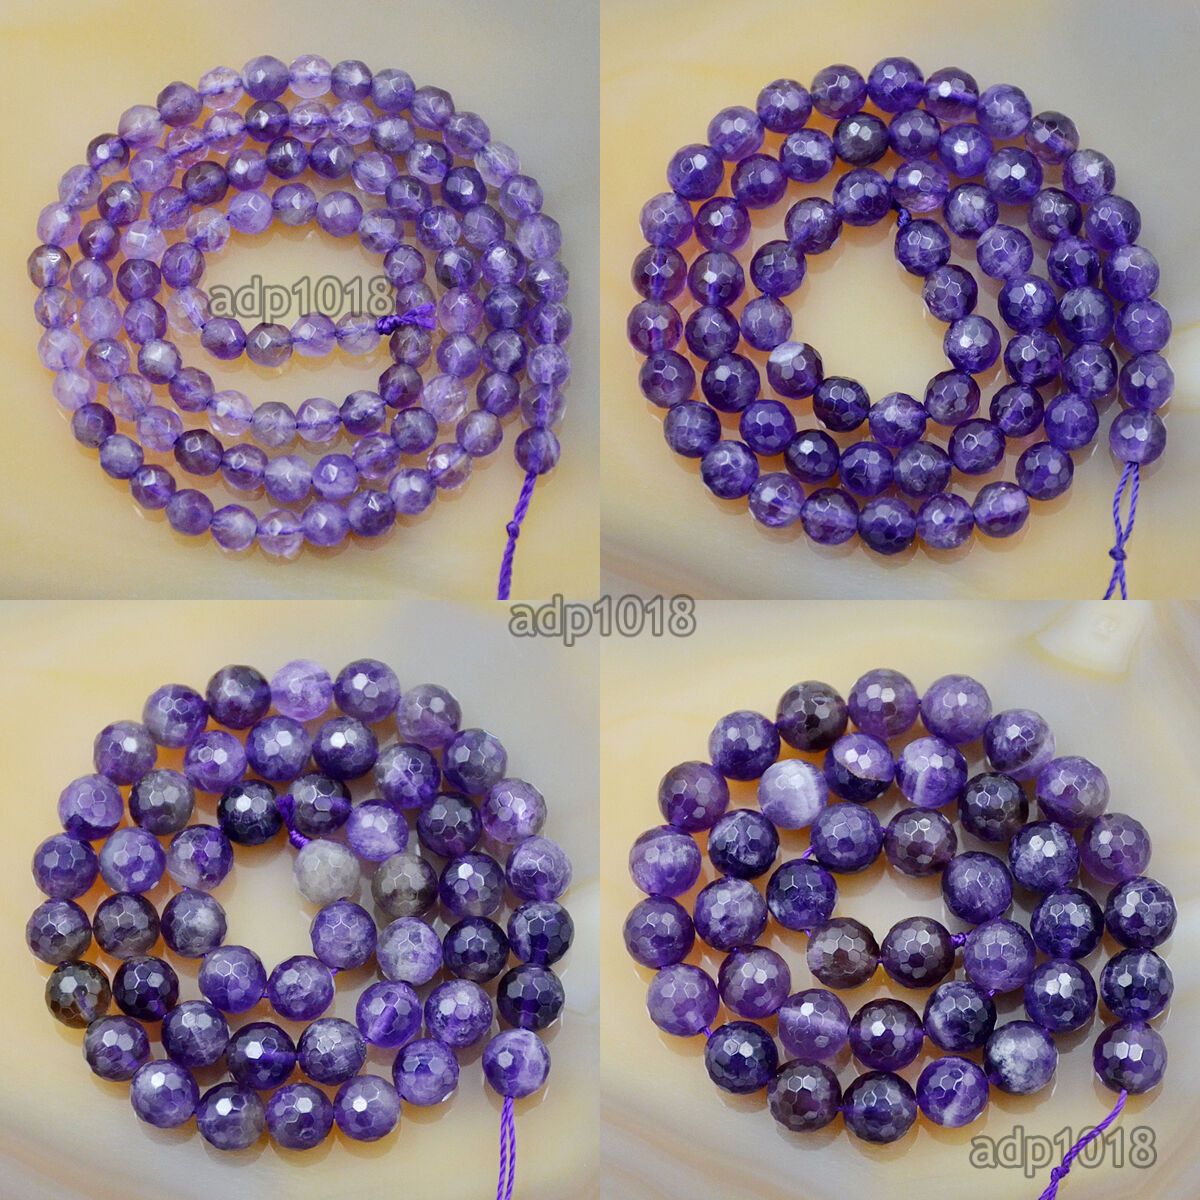 Natural Gemstones Faceted Round Spacer Loose Beads 155 4mm 6mm 8mm 10mm 12mm